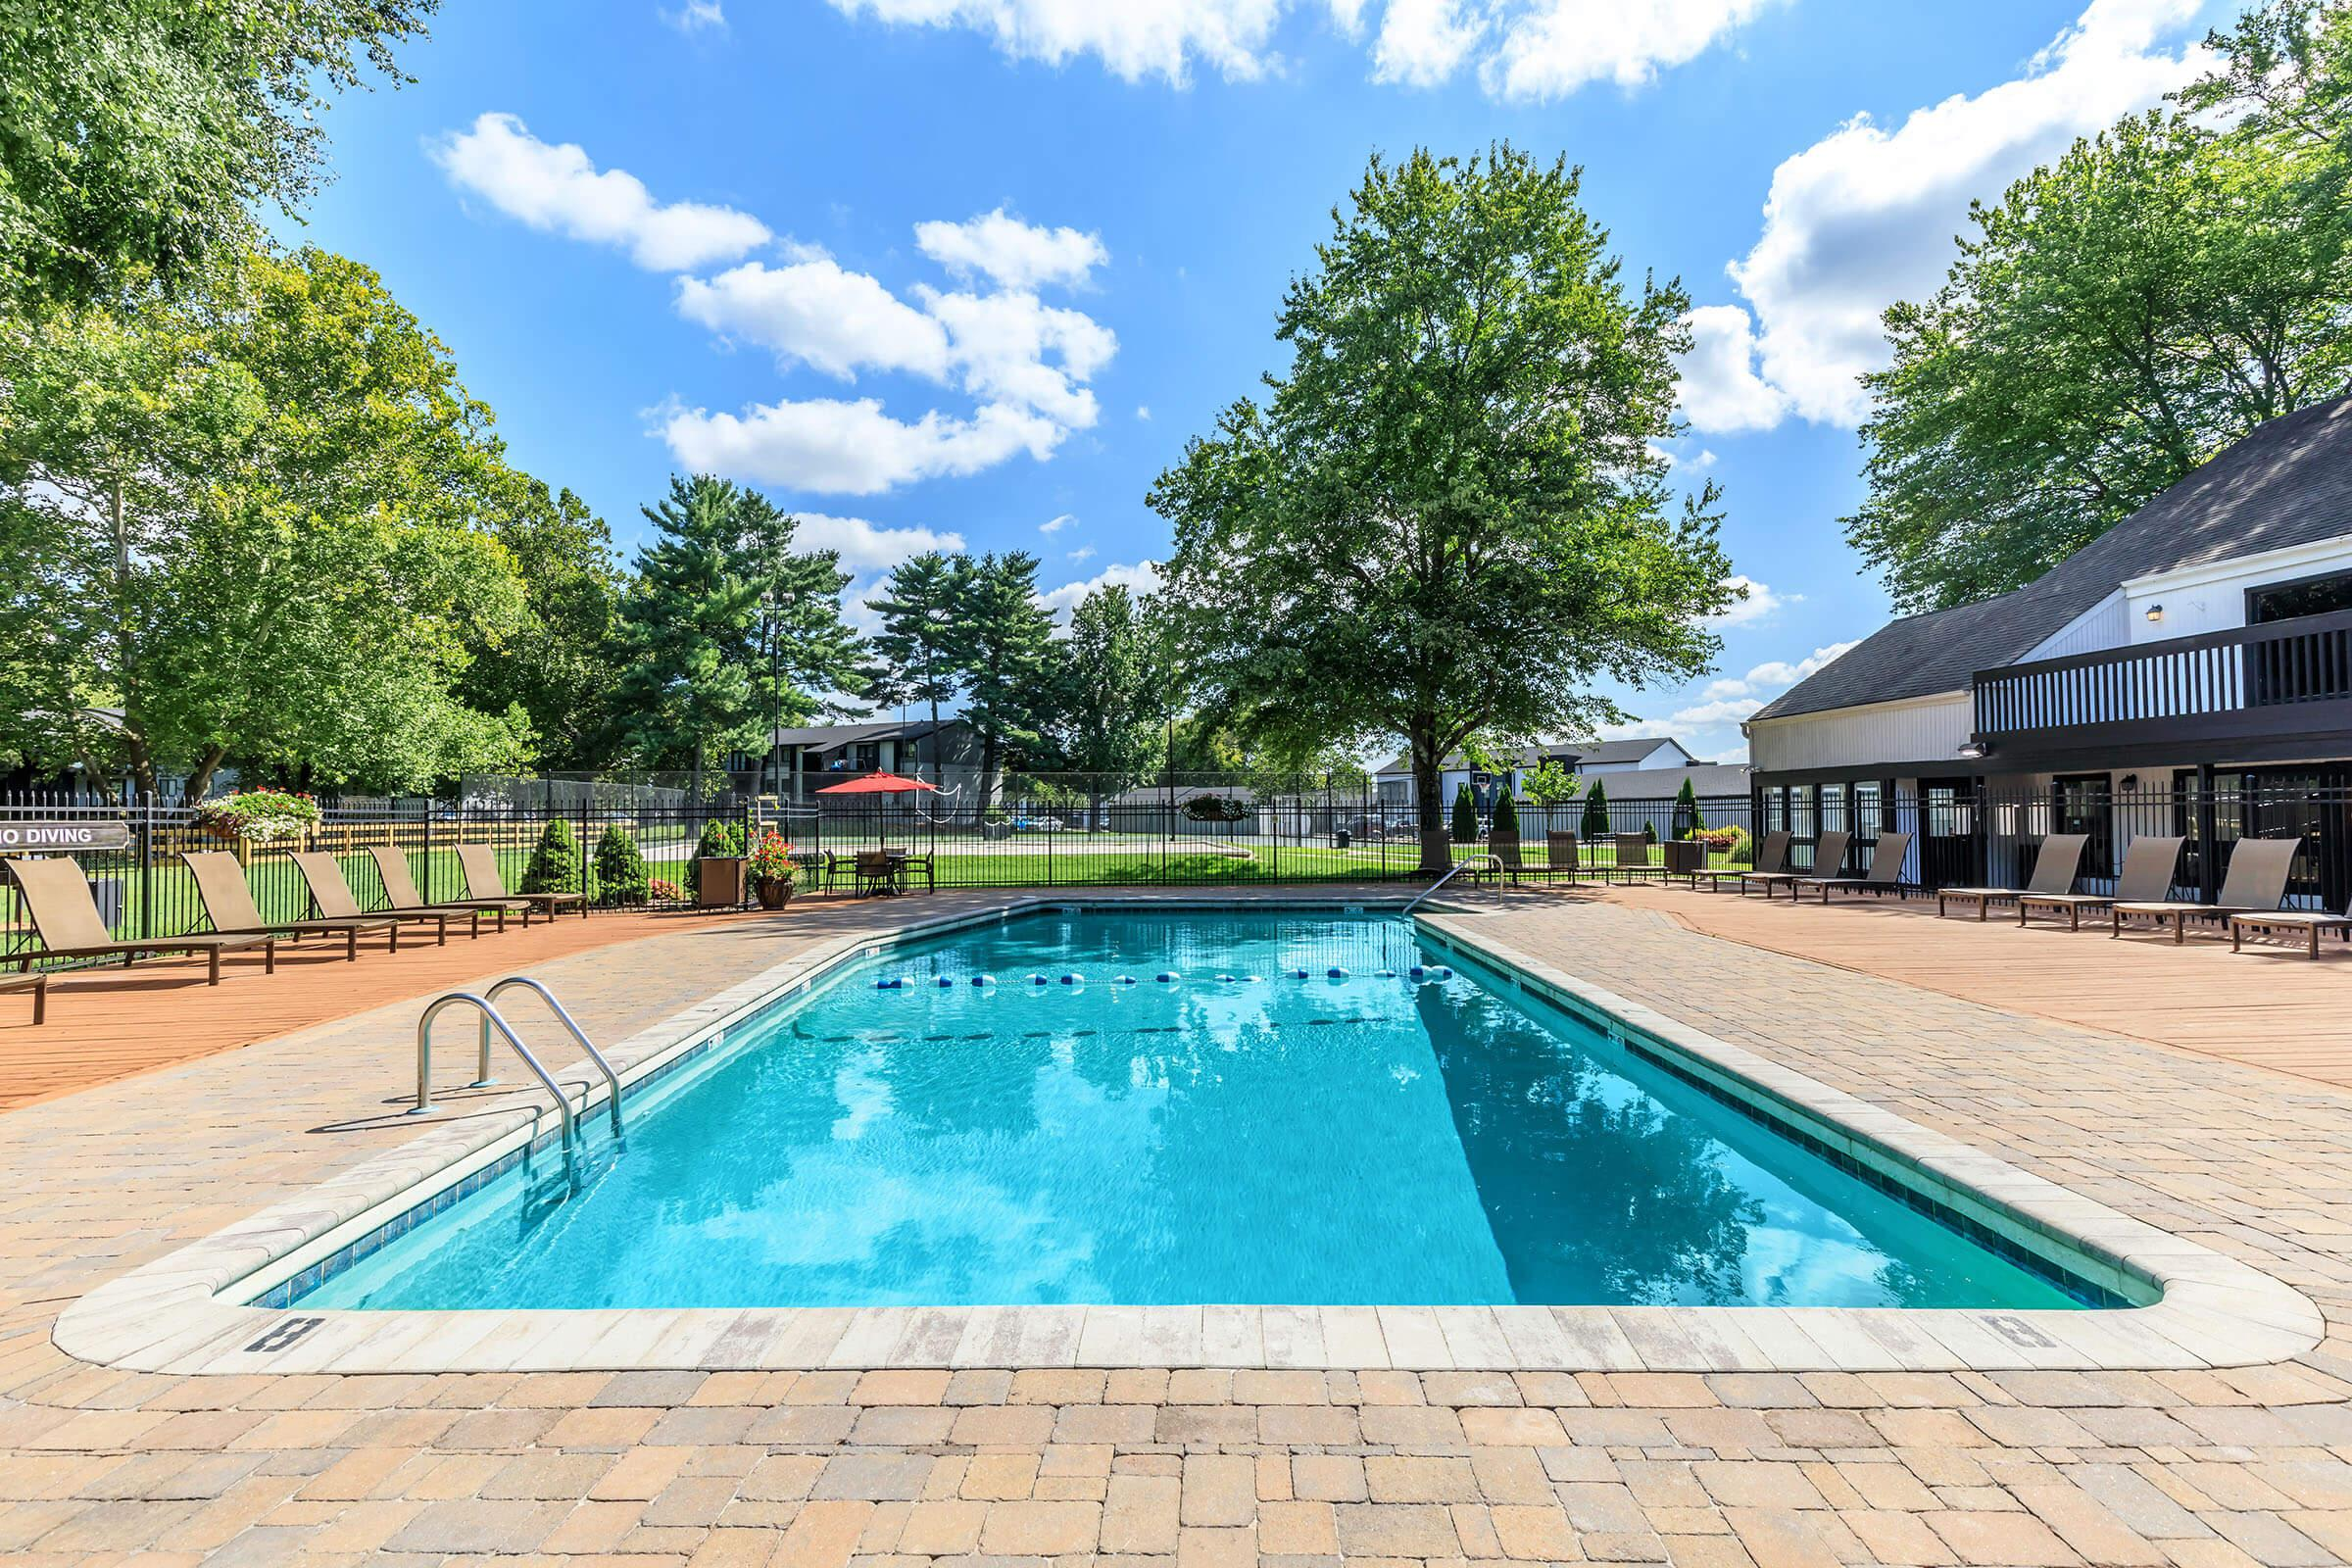 Our Pools Here at Brendon Park Apartments are the Best